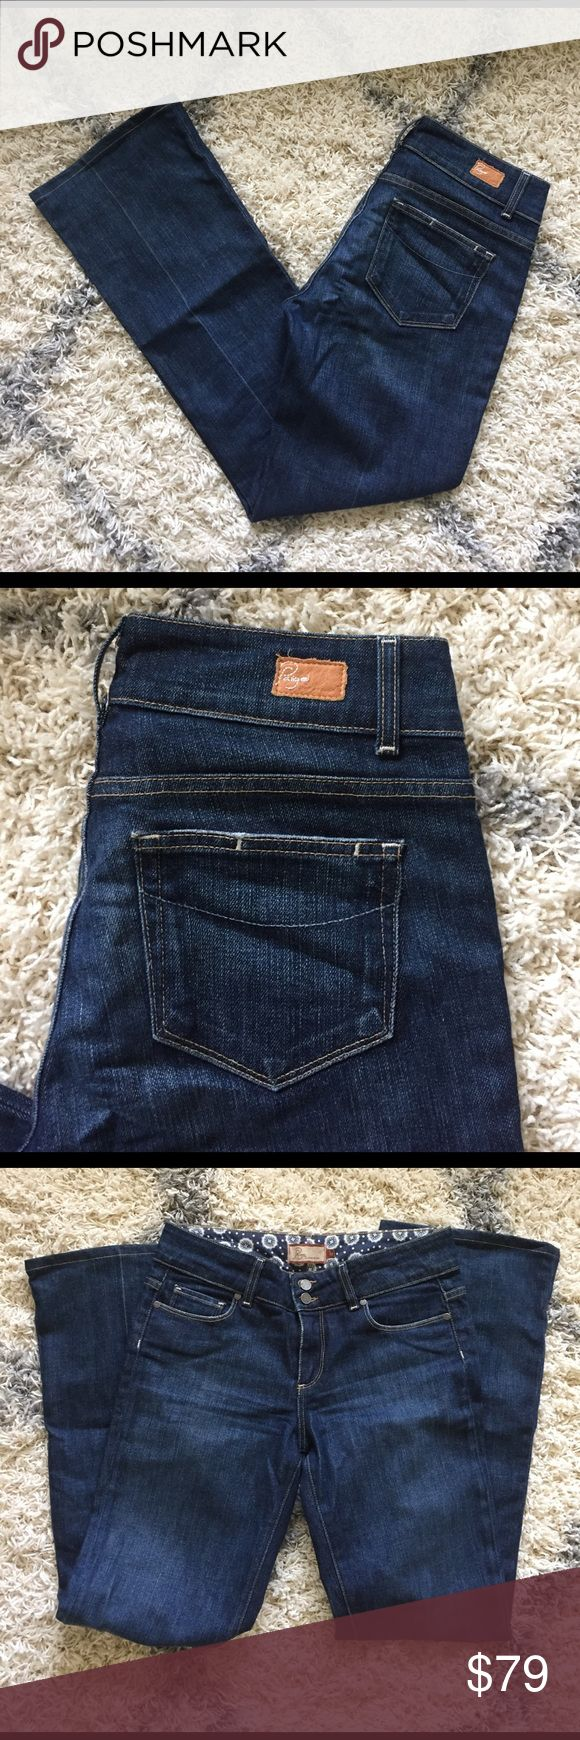 Paige Premium Denim Hidden Hills bootcut jeans 29 Paige Premium Denim Hidden Hills bootcut jeans 29. High rise. 9.5 inch rise. Inseam 32. Hemmed but not original hem. Medium to dark wash. Worn once. 98% cotton, 2% cotton Paige Jeans Jeans Boot Cut